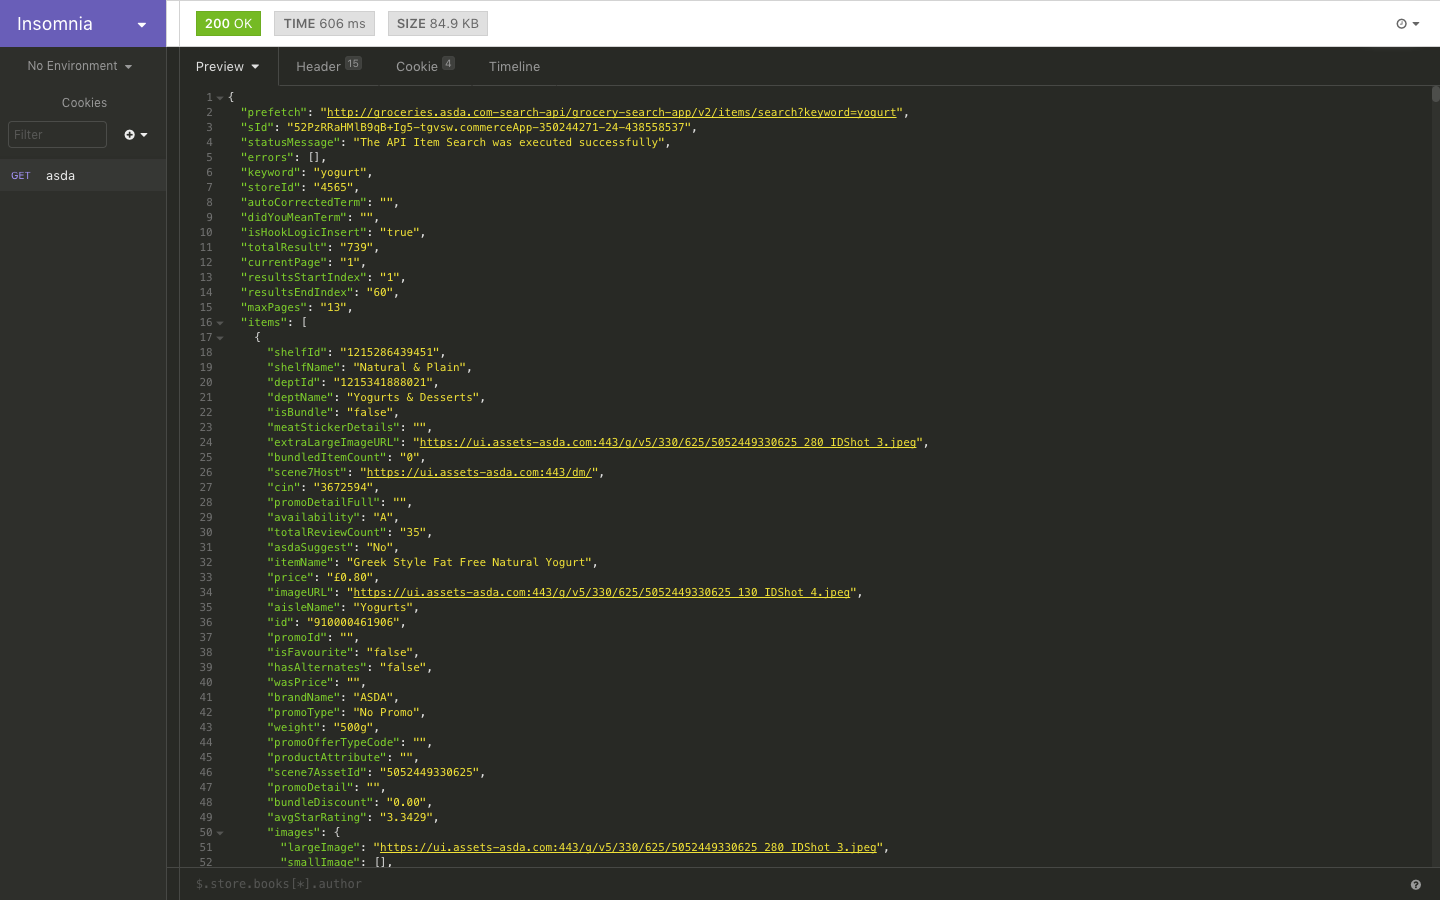 Preview of JSON response in Insomnia